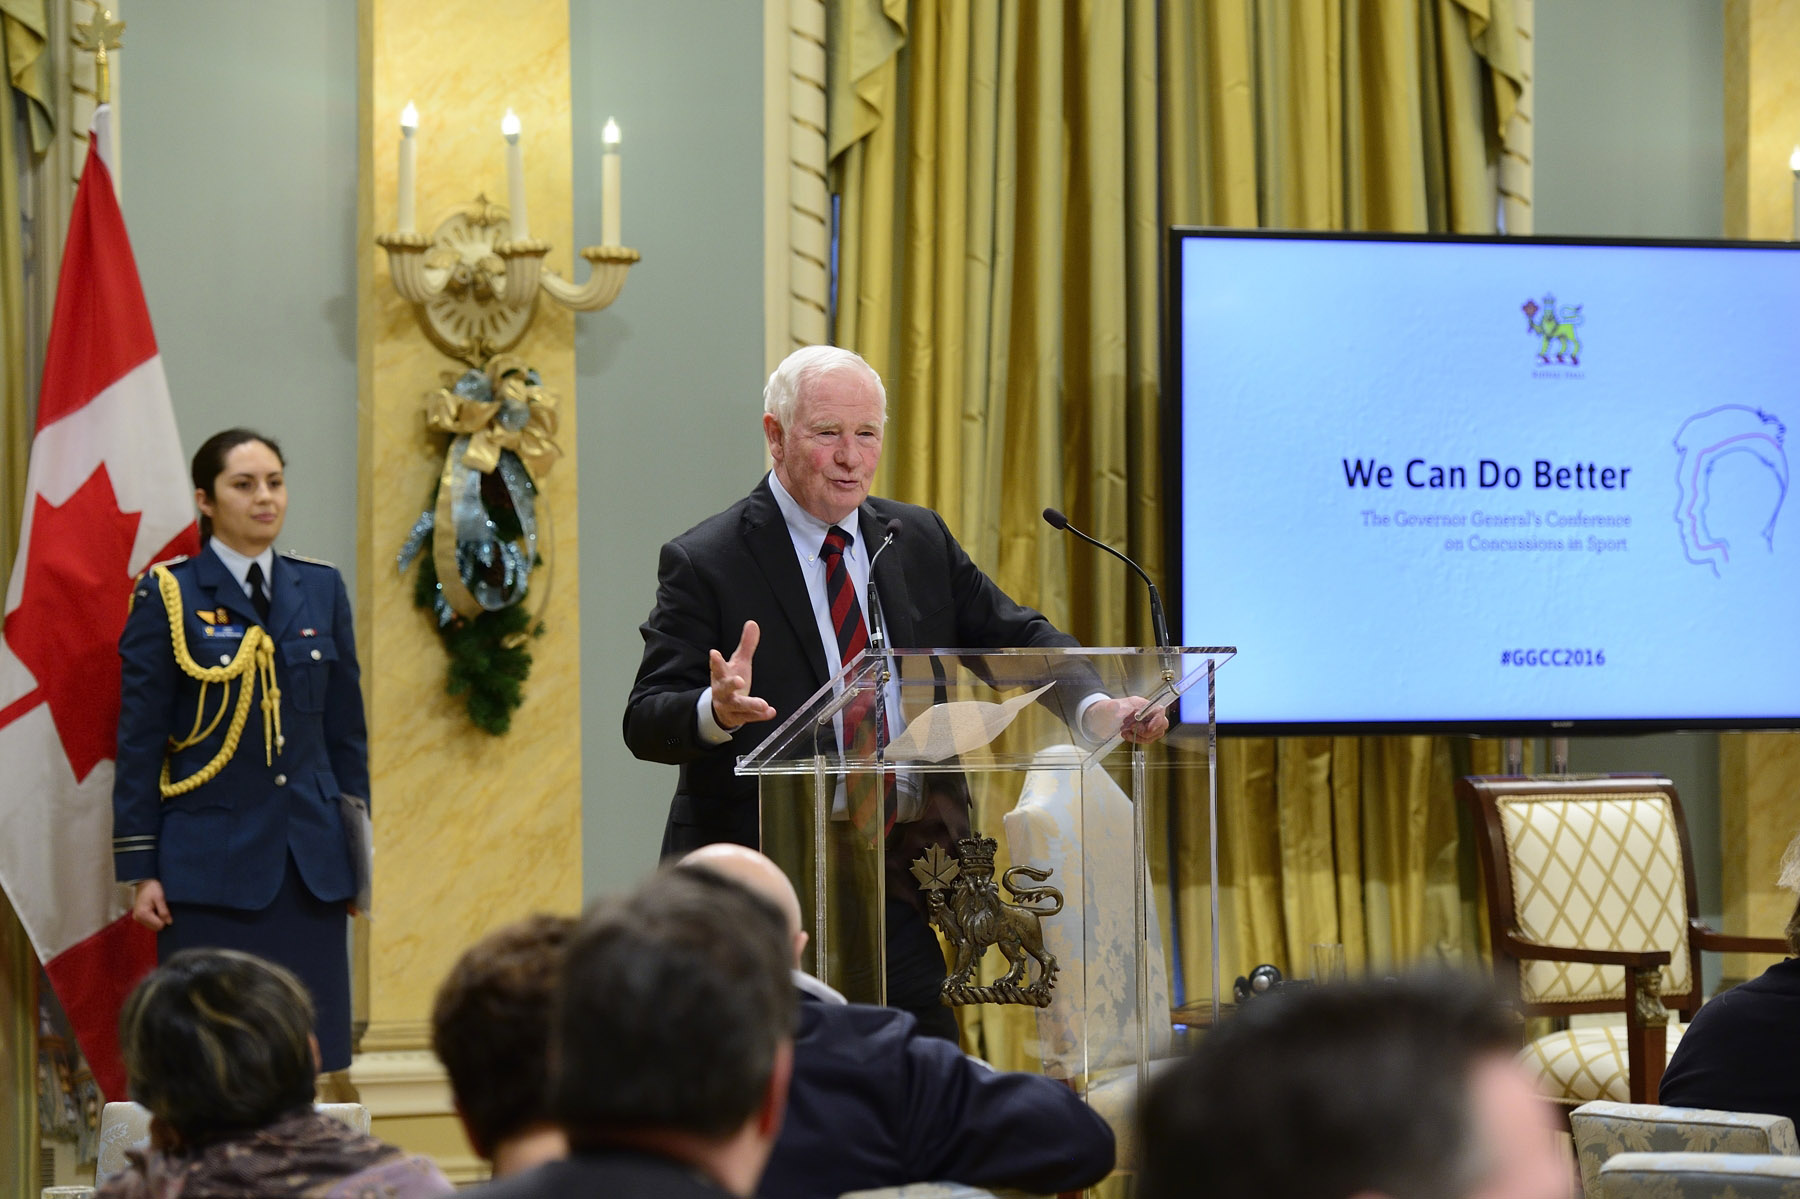 His Excellency concluded the conference with closing remarks. The conference was hosted by the Governor General and driven by his strong desire for Canadian youth to play safe and to continue to get involved in sport and physical activity. Its objectives were to bring together federal, provincial and territorial government representatives and key stakeholders in the sport, recreation, health and education sectors to advance collaboration in the development of a national approach to manage, detect and prevent concussions.